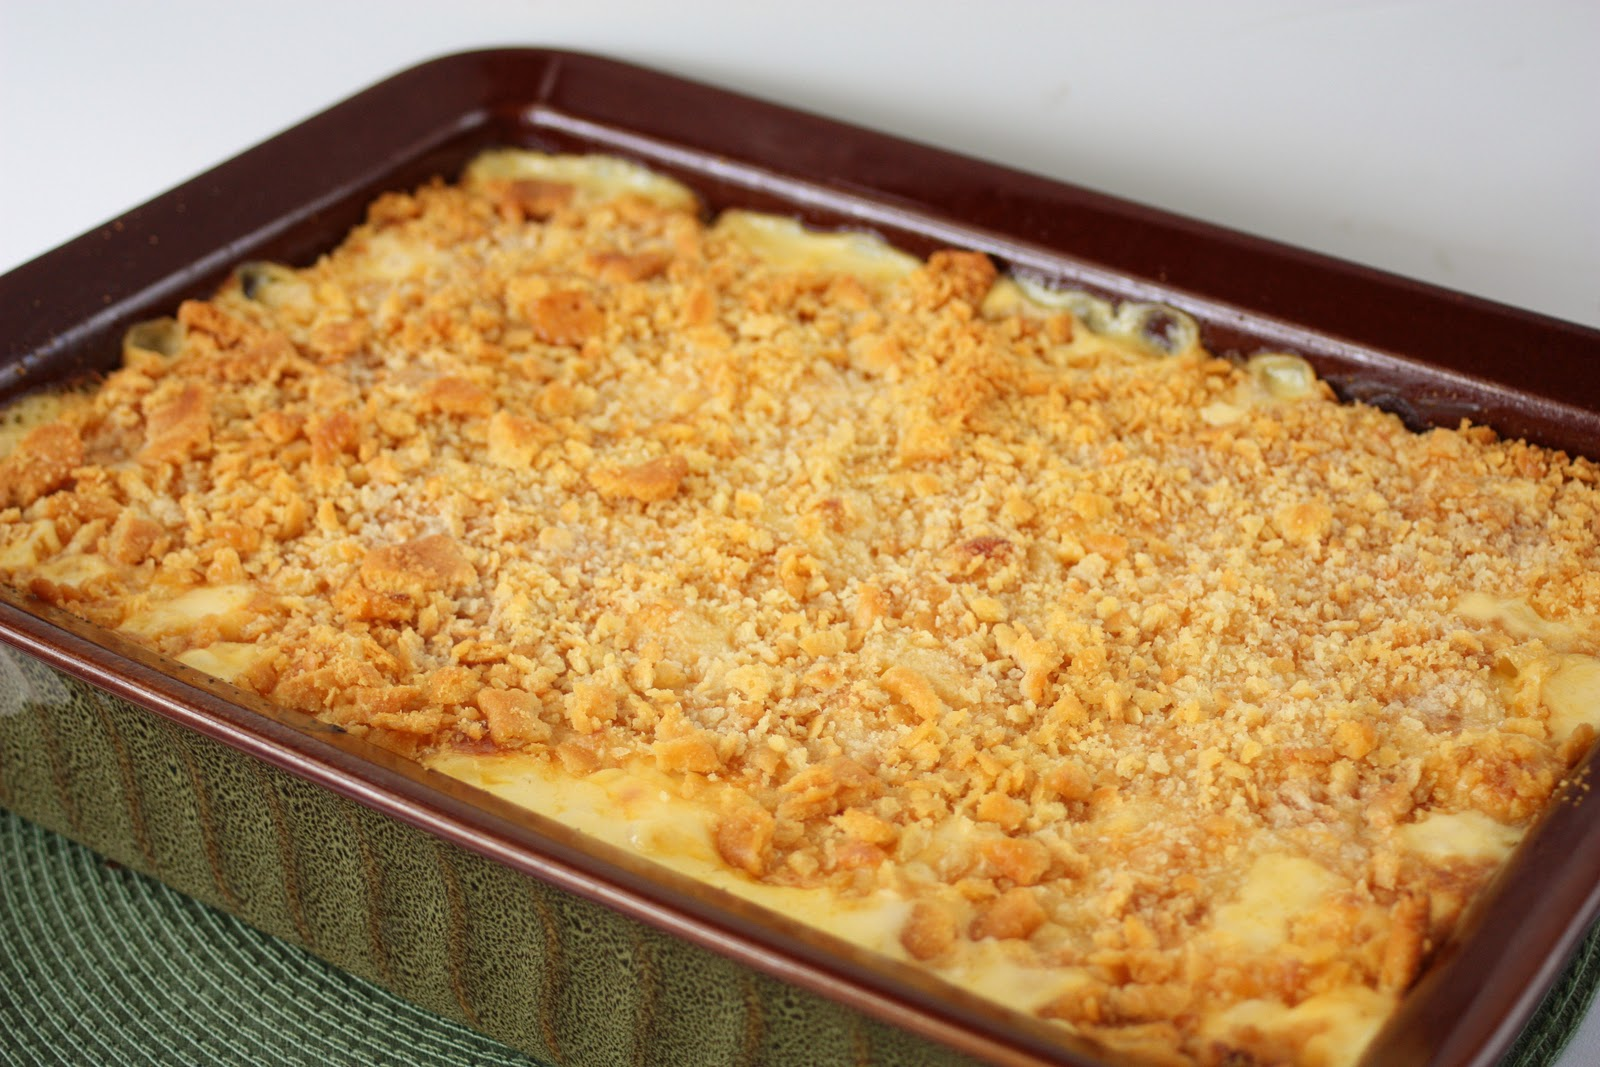 Just A Spoonful Of Homemade Macaroni And Cheese